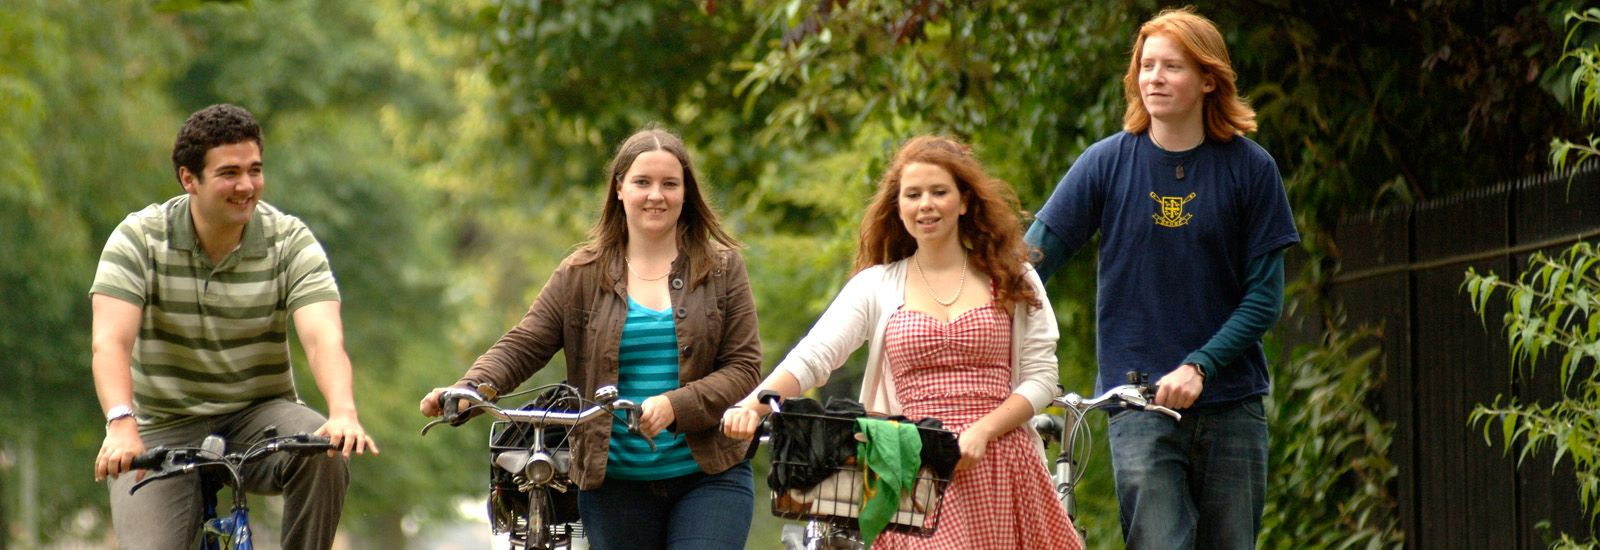 Four students walking with their bikes